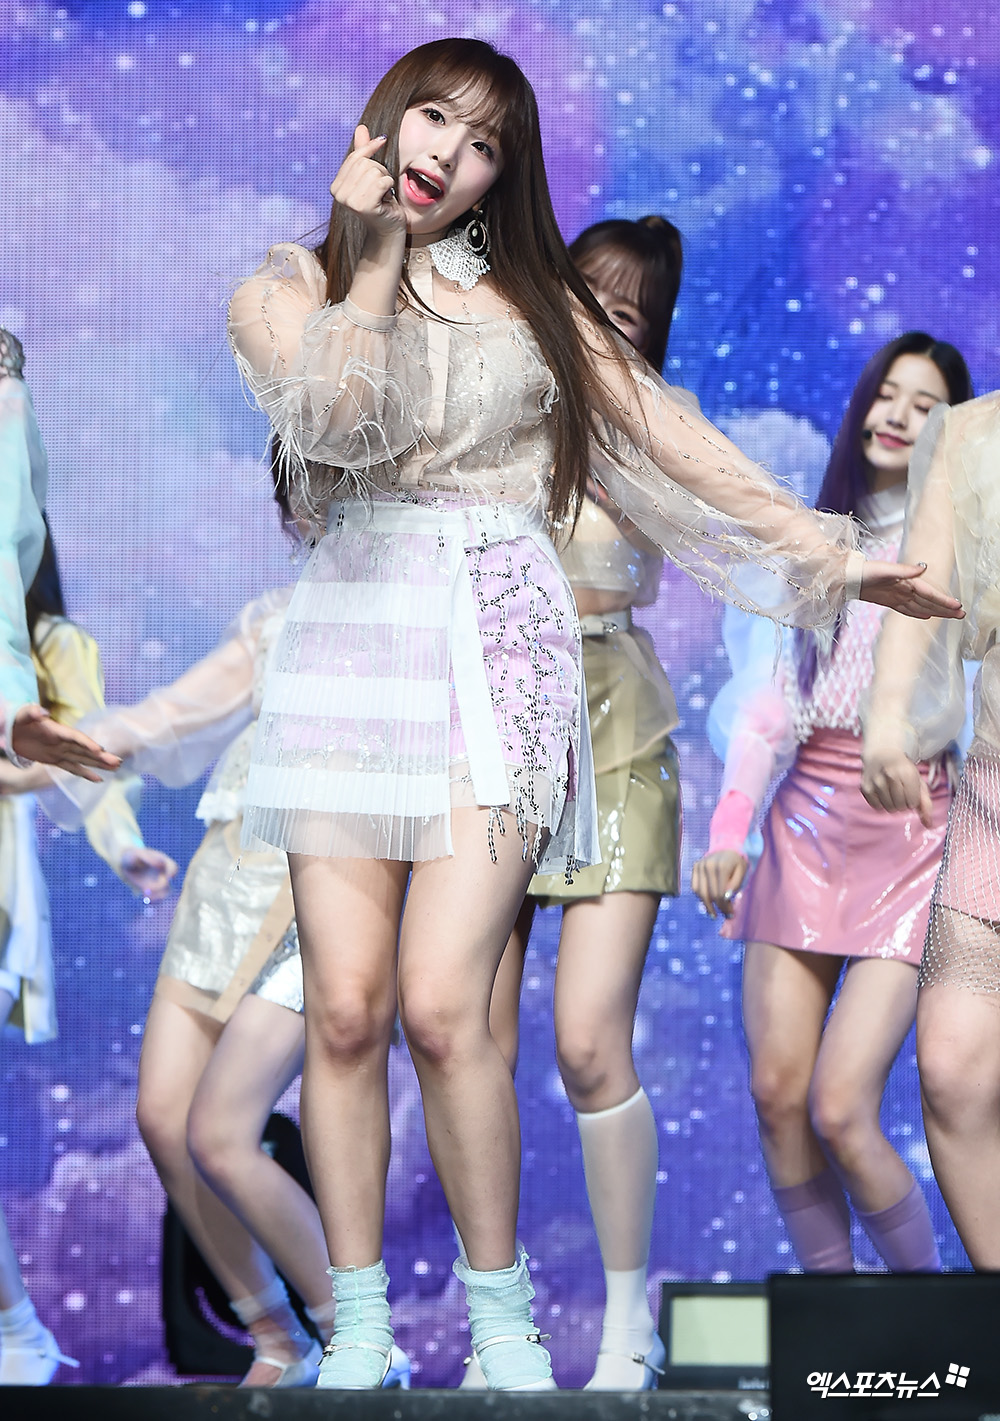 <p> 1 afternoon Hannam-dong Blue Square in the open within a group Izone(IZ*ONE) the second mini album, 'heart like(HEART*IZ)' showcase and attend the Izone Choi has a wonderful stage.</p>